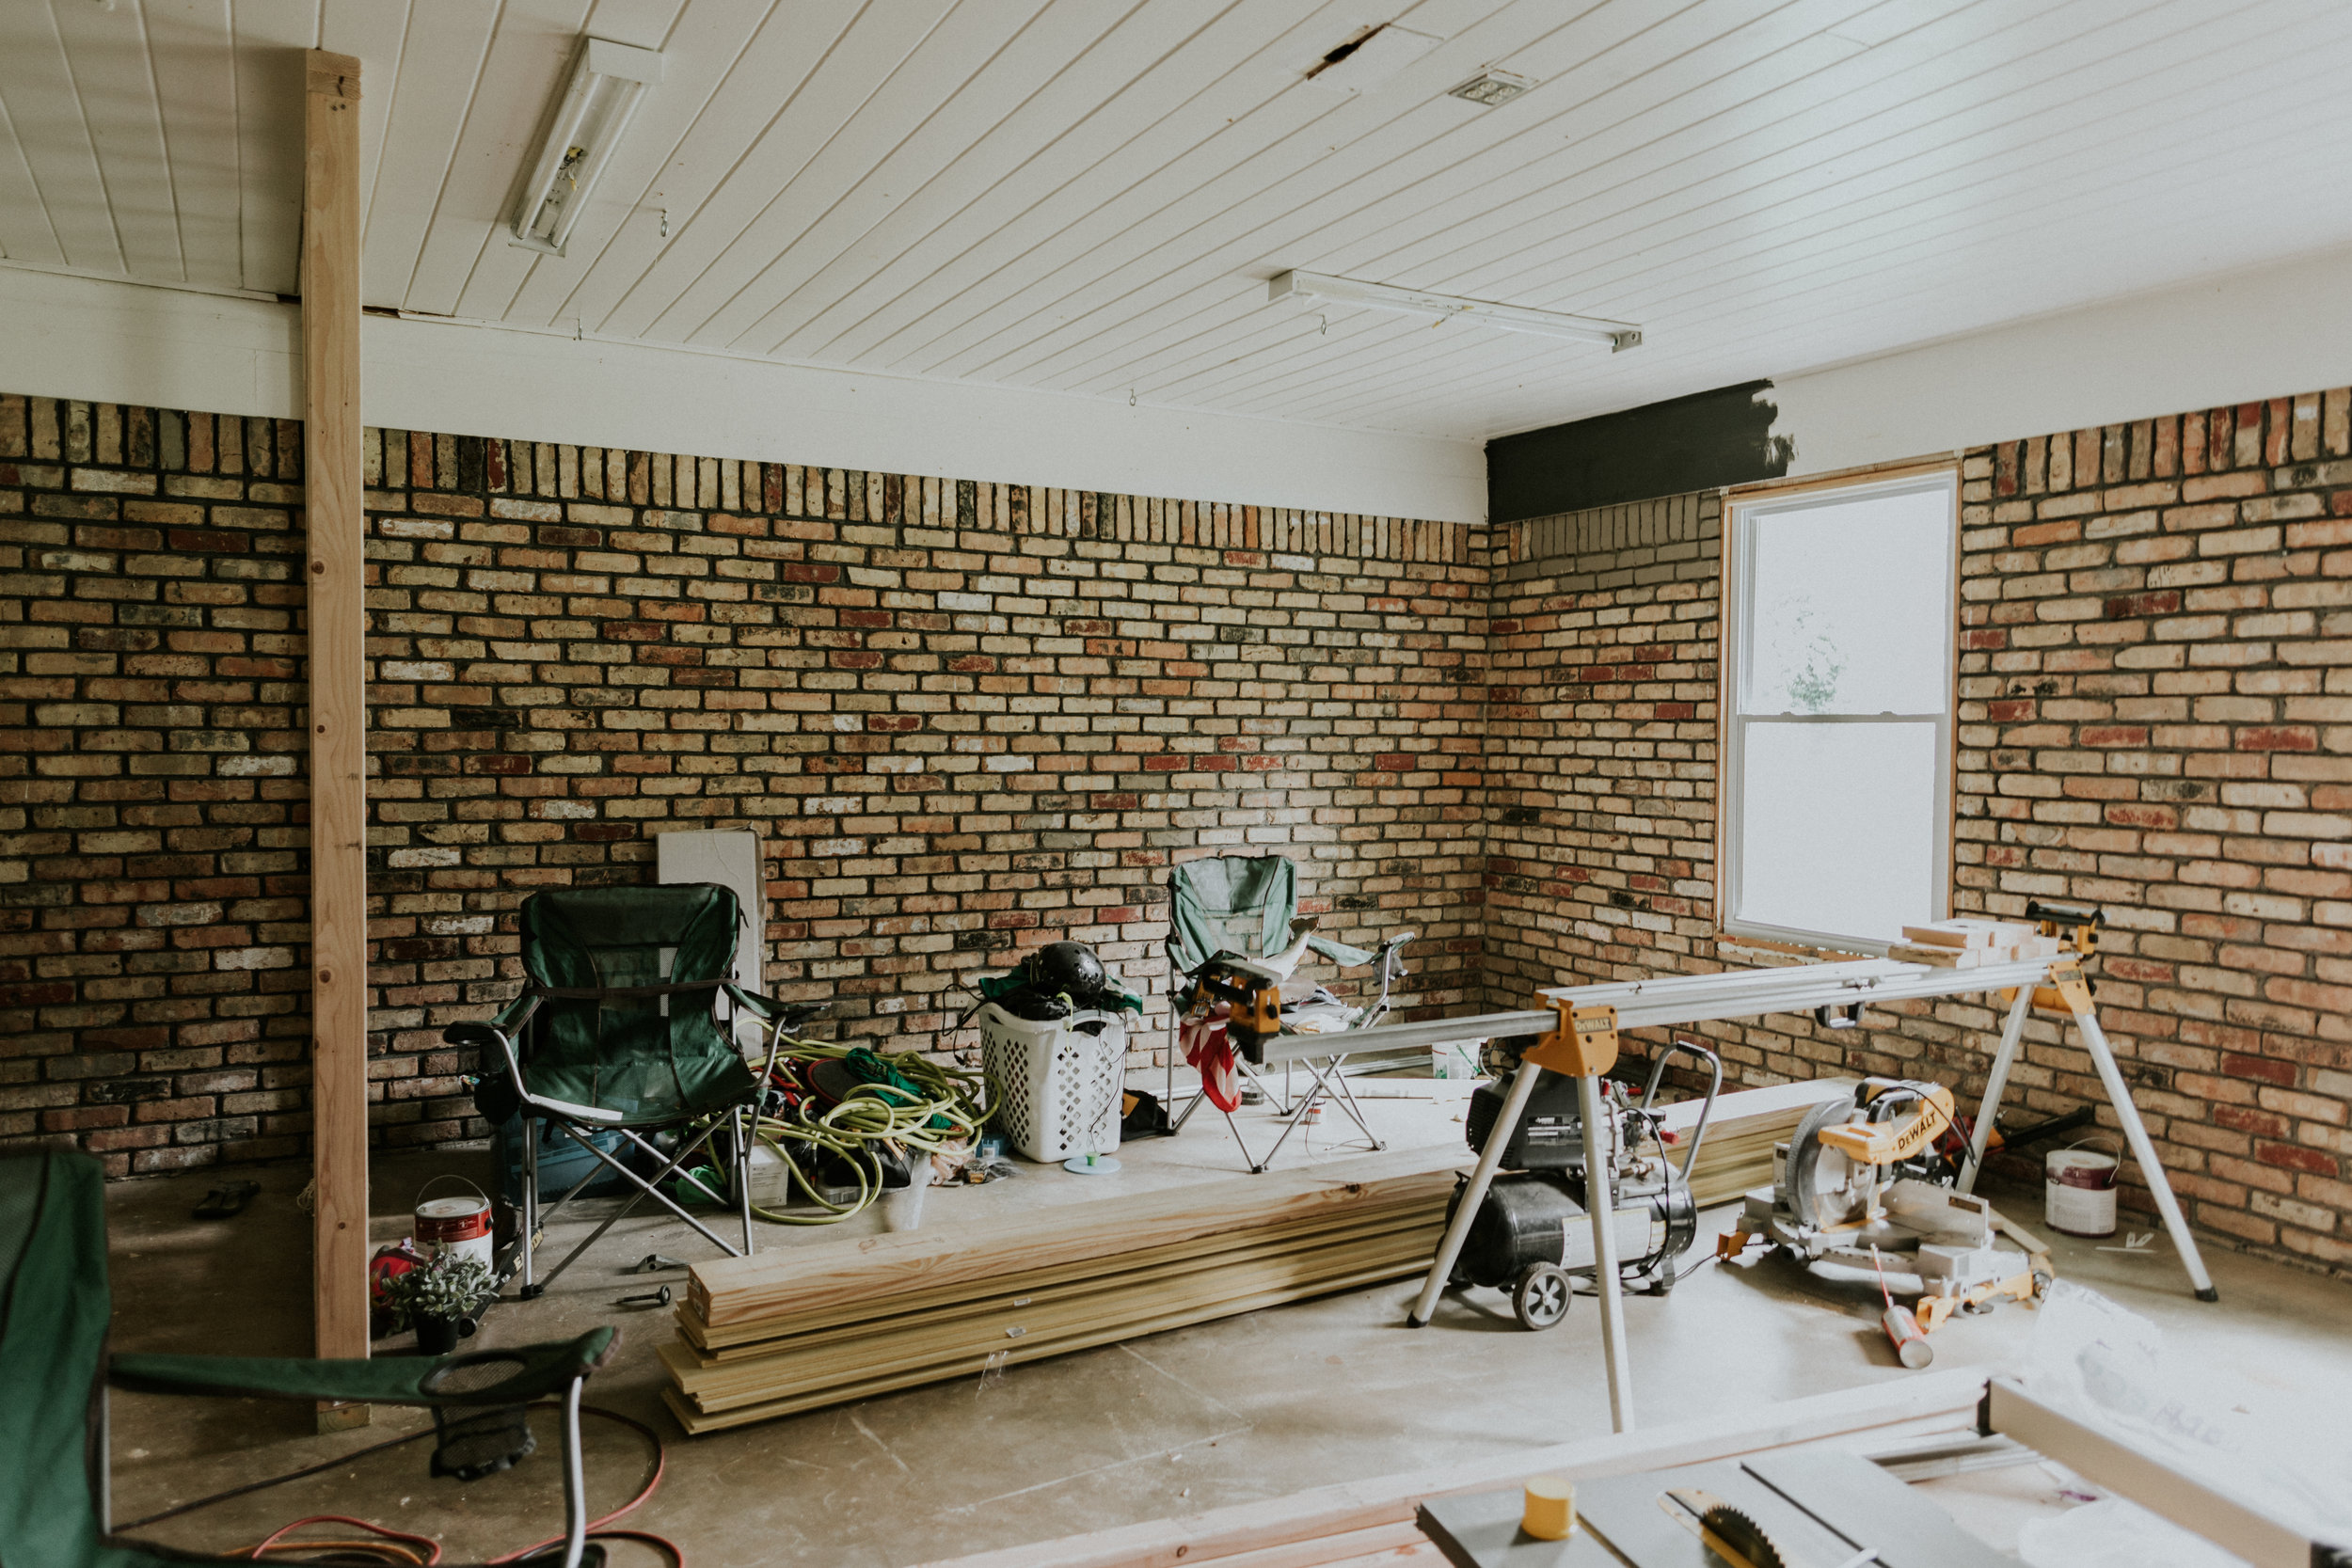 Converting your garage into a livable space